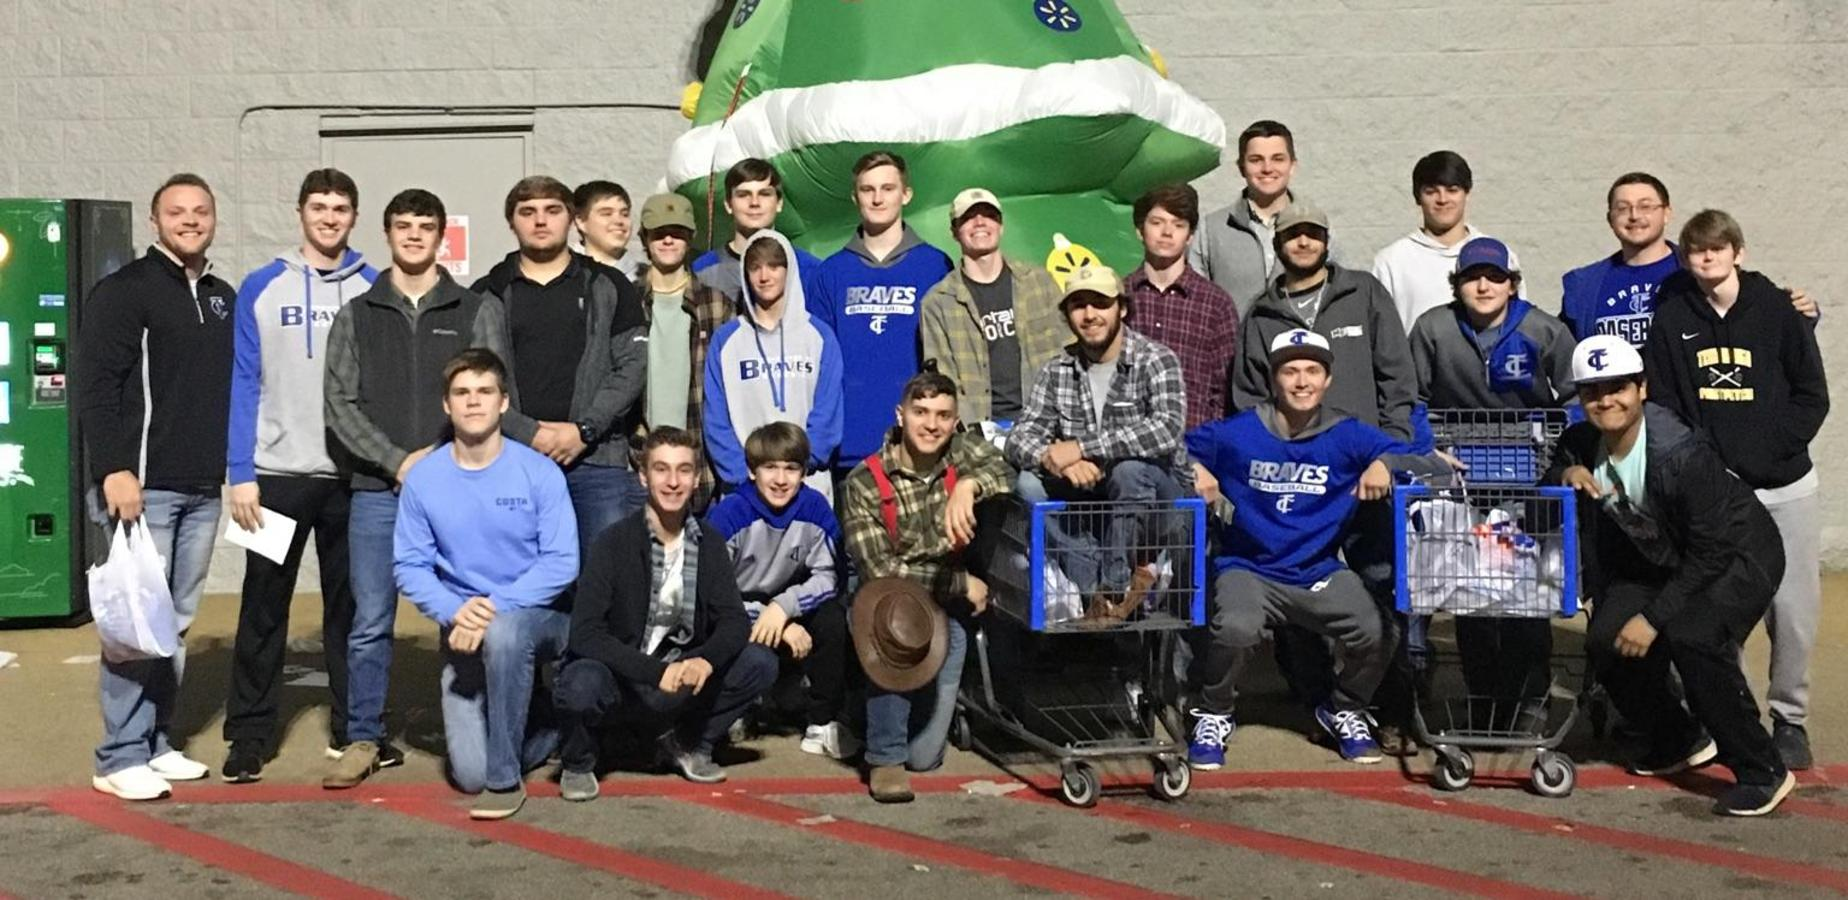 TCHS Baseball Team Shopping for Angel Tree Gifts